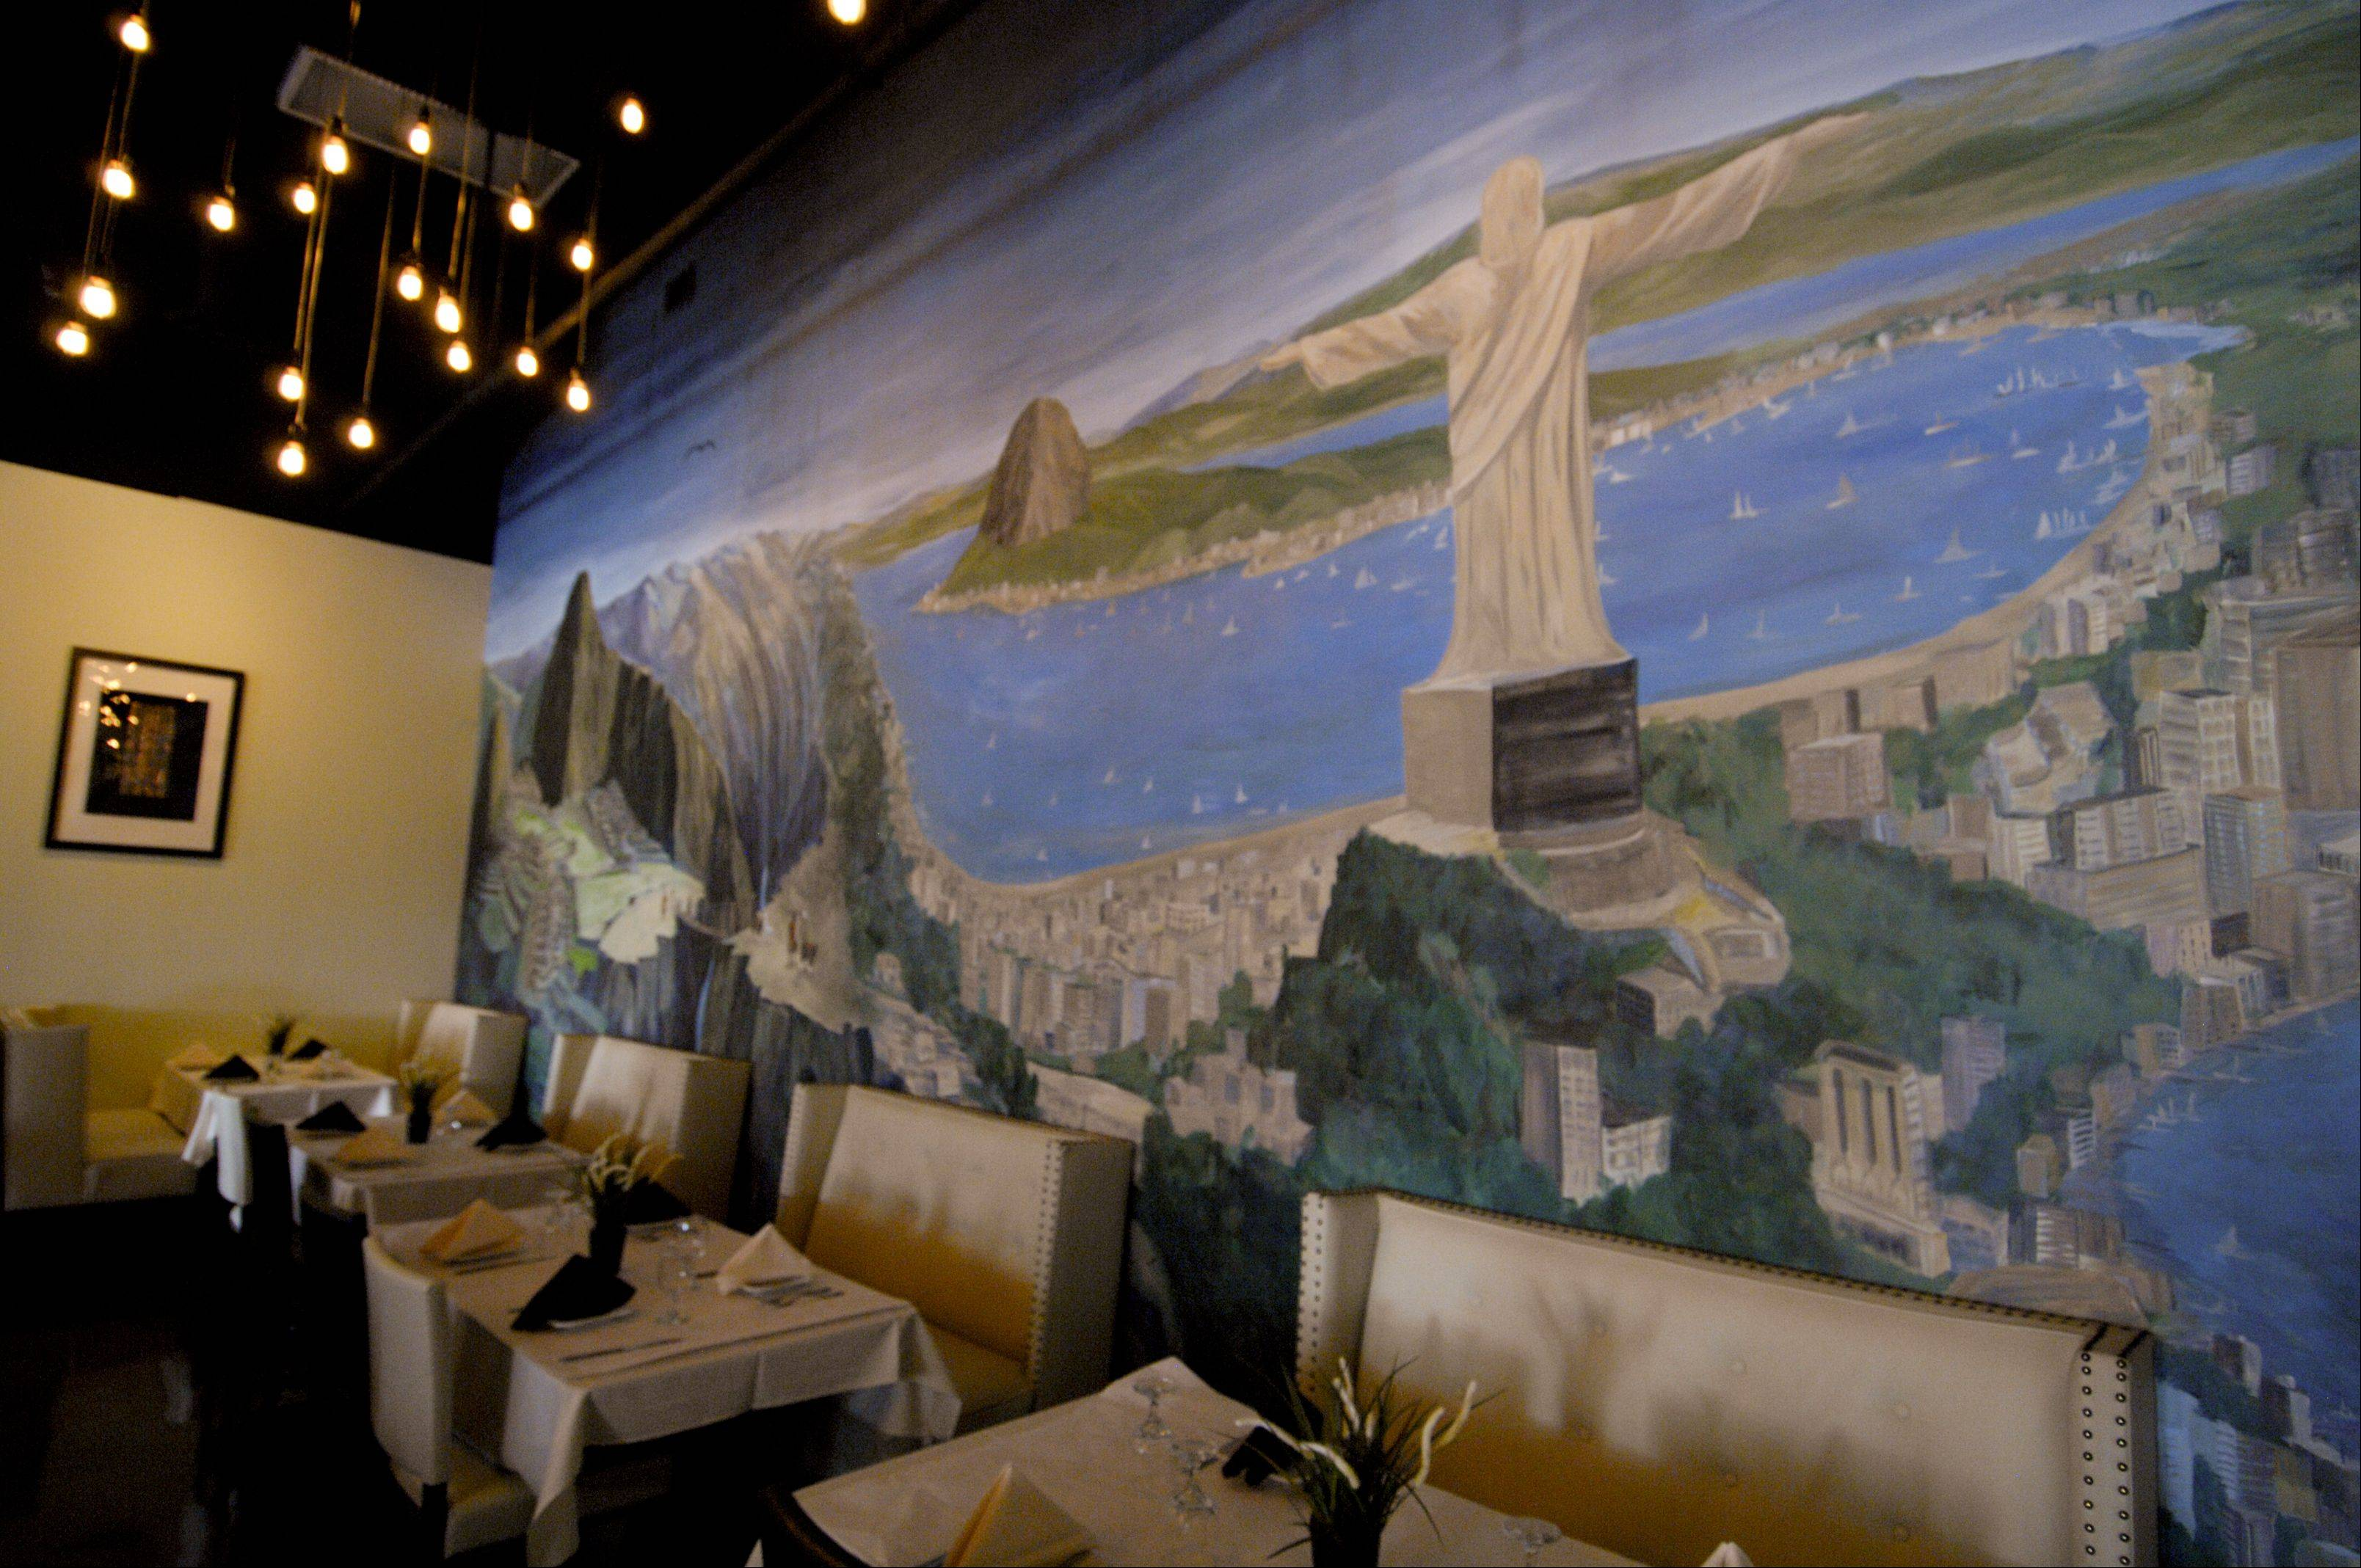 With its cuisine and atmosphere, Rio's in Addison transports diners to South America.